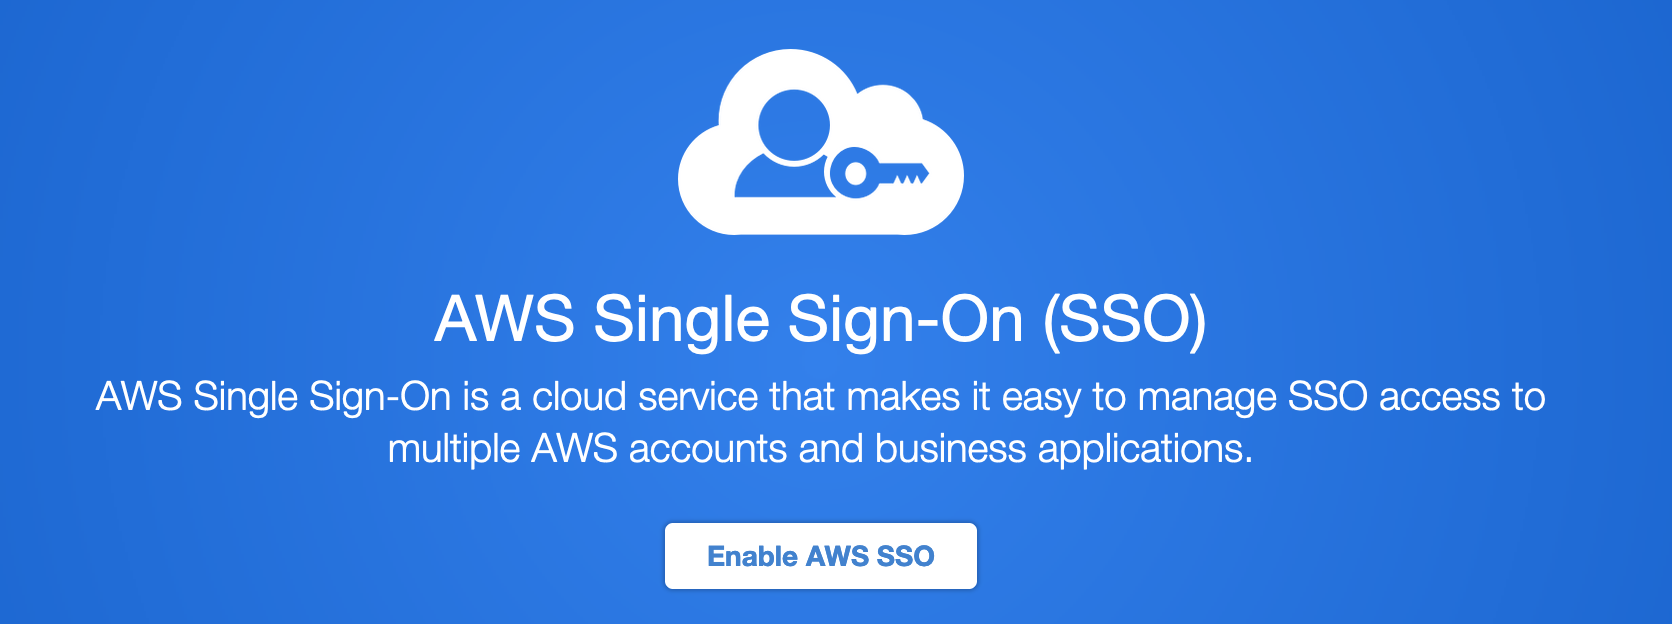 When using AWS in an enterprise environment, best practices dictate to use a single sign-on service for identity and access management. AWS SSO is a p